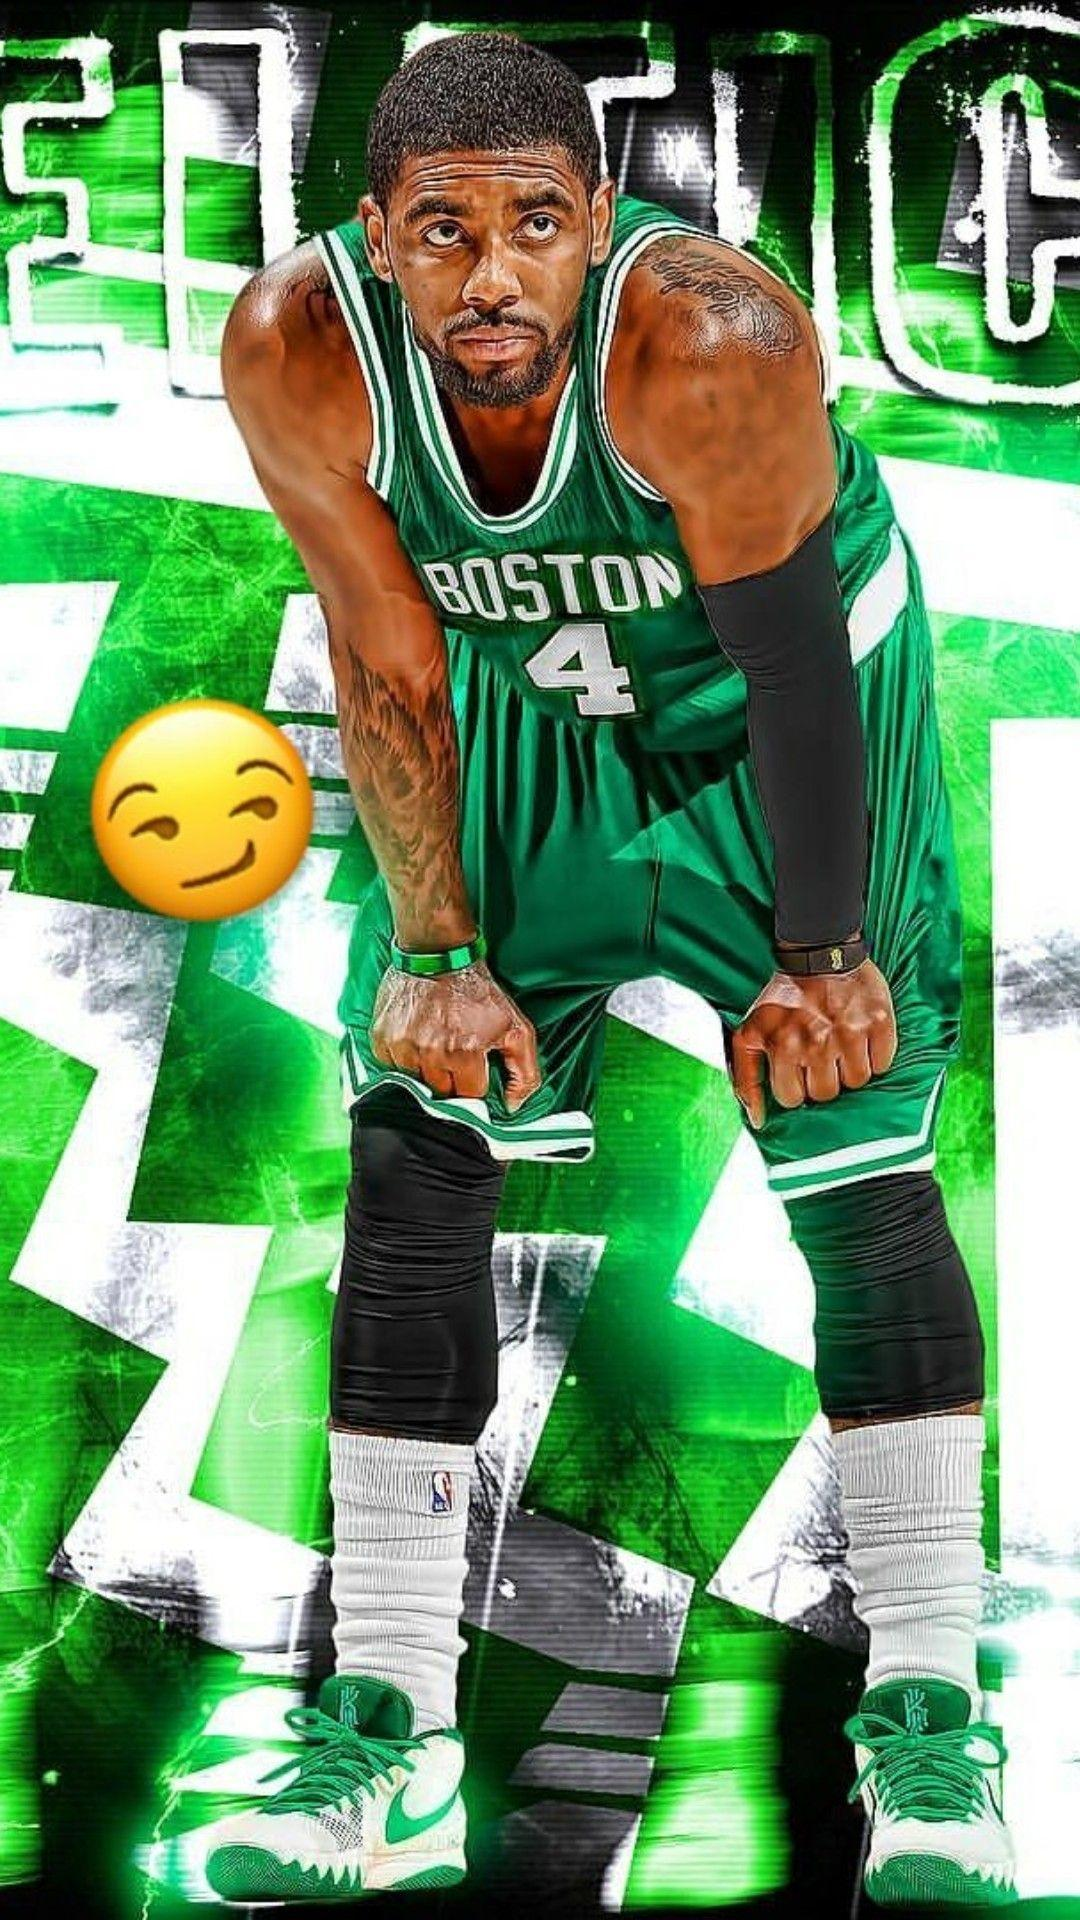 Boston Celtics HD Wallpapers (64+ images)